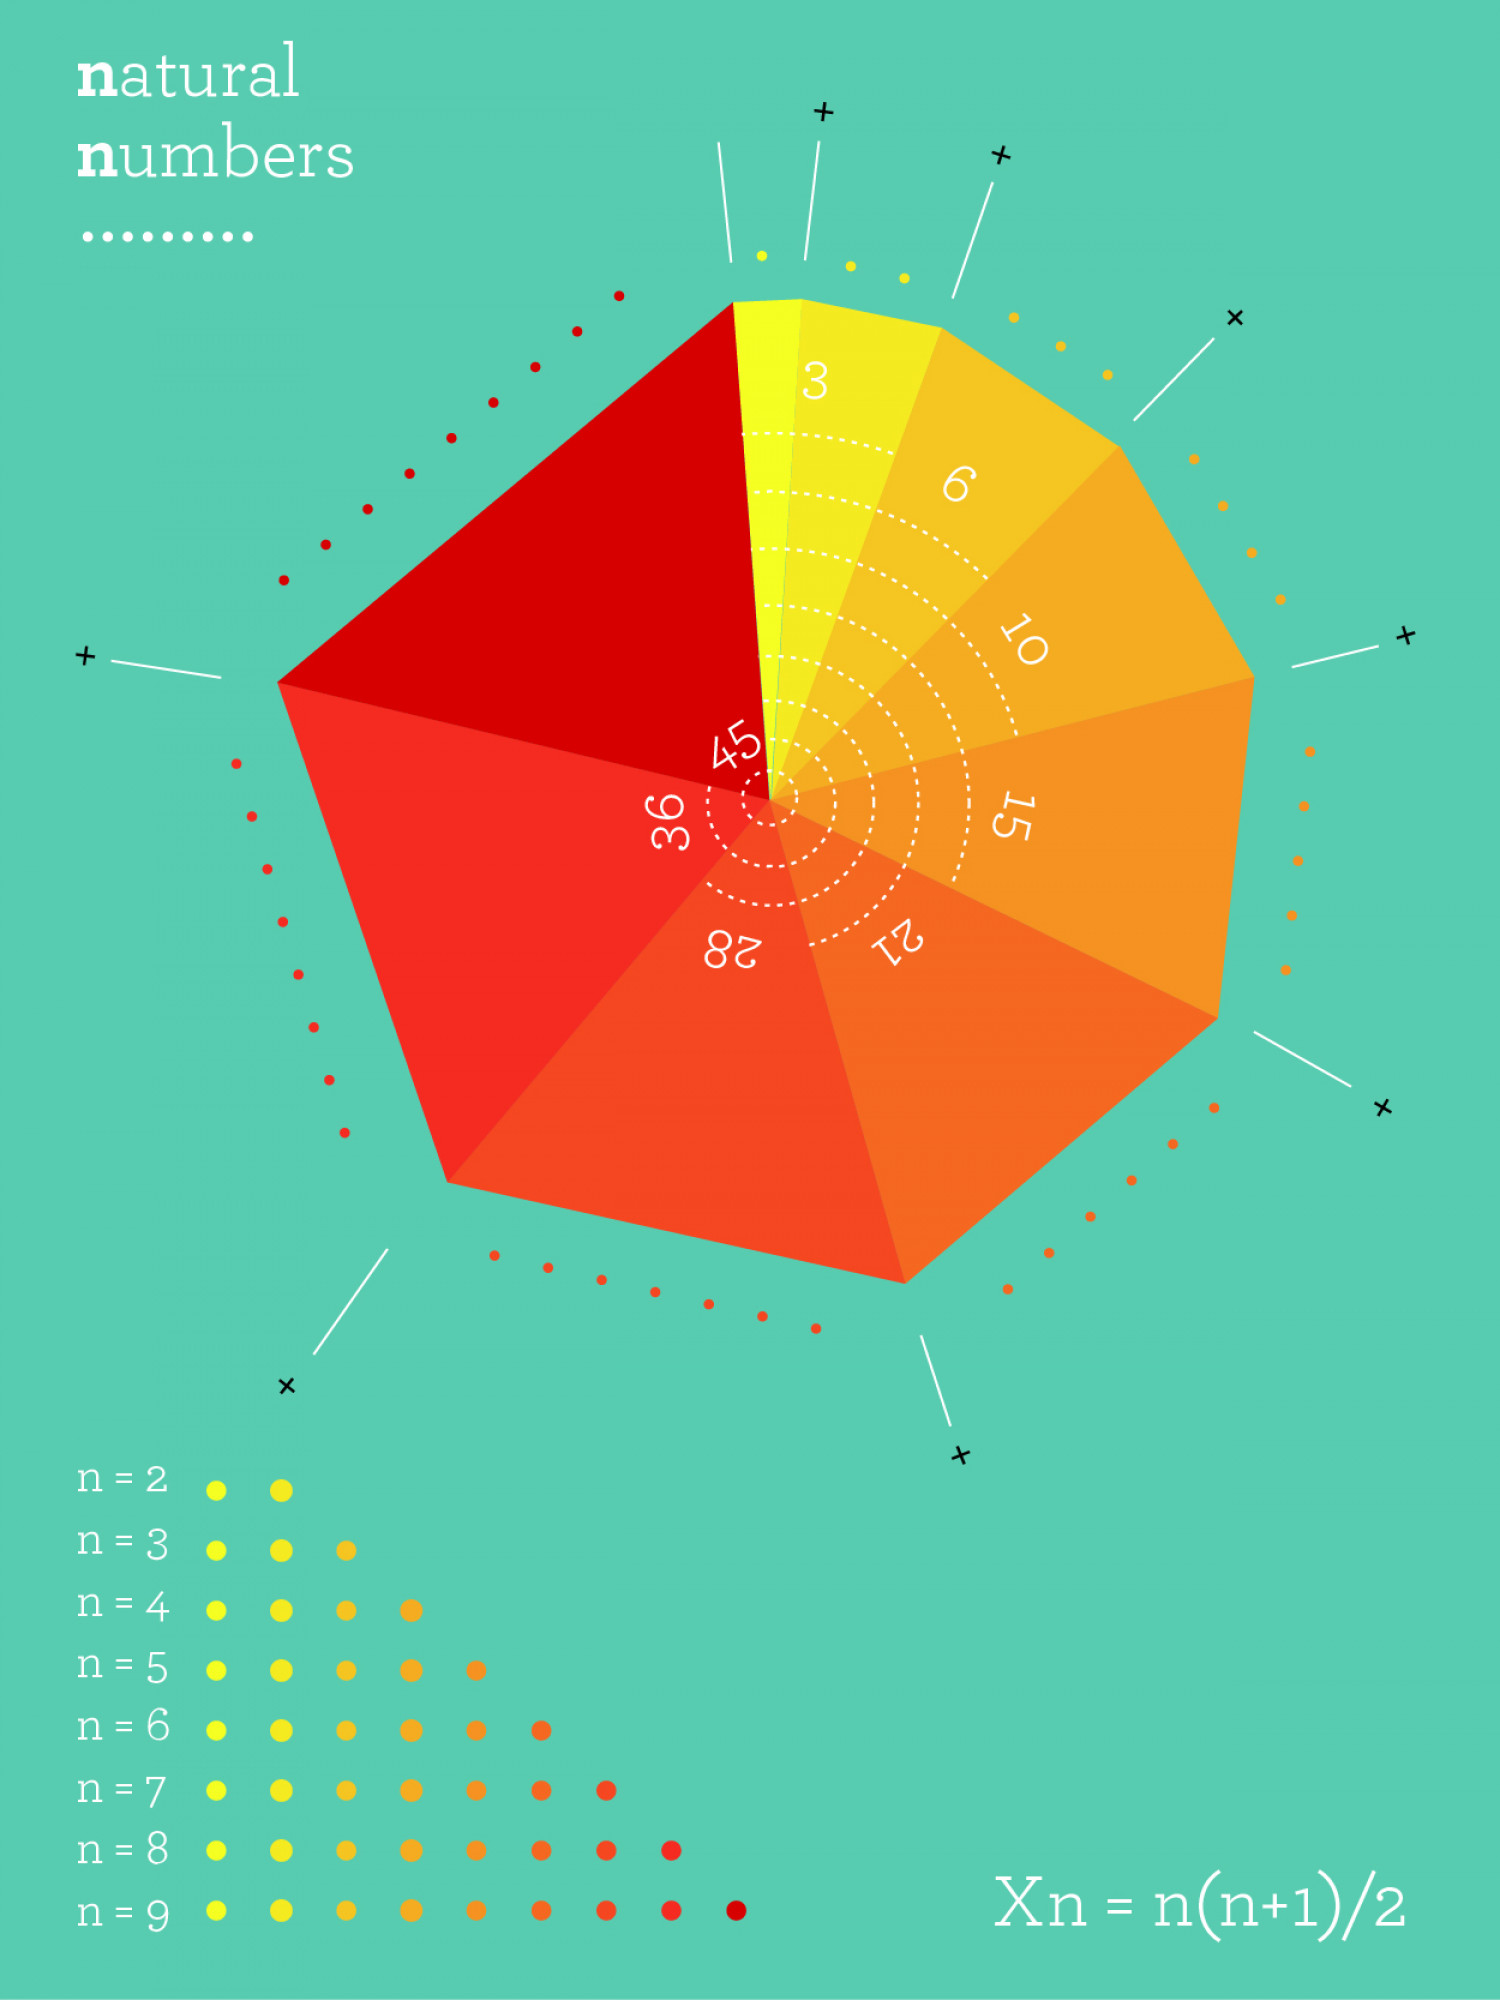 Natural Numbers Infographic